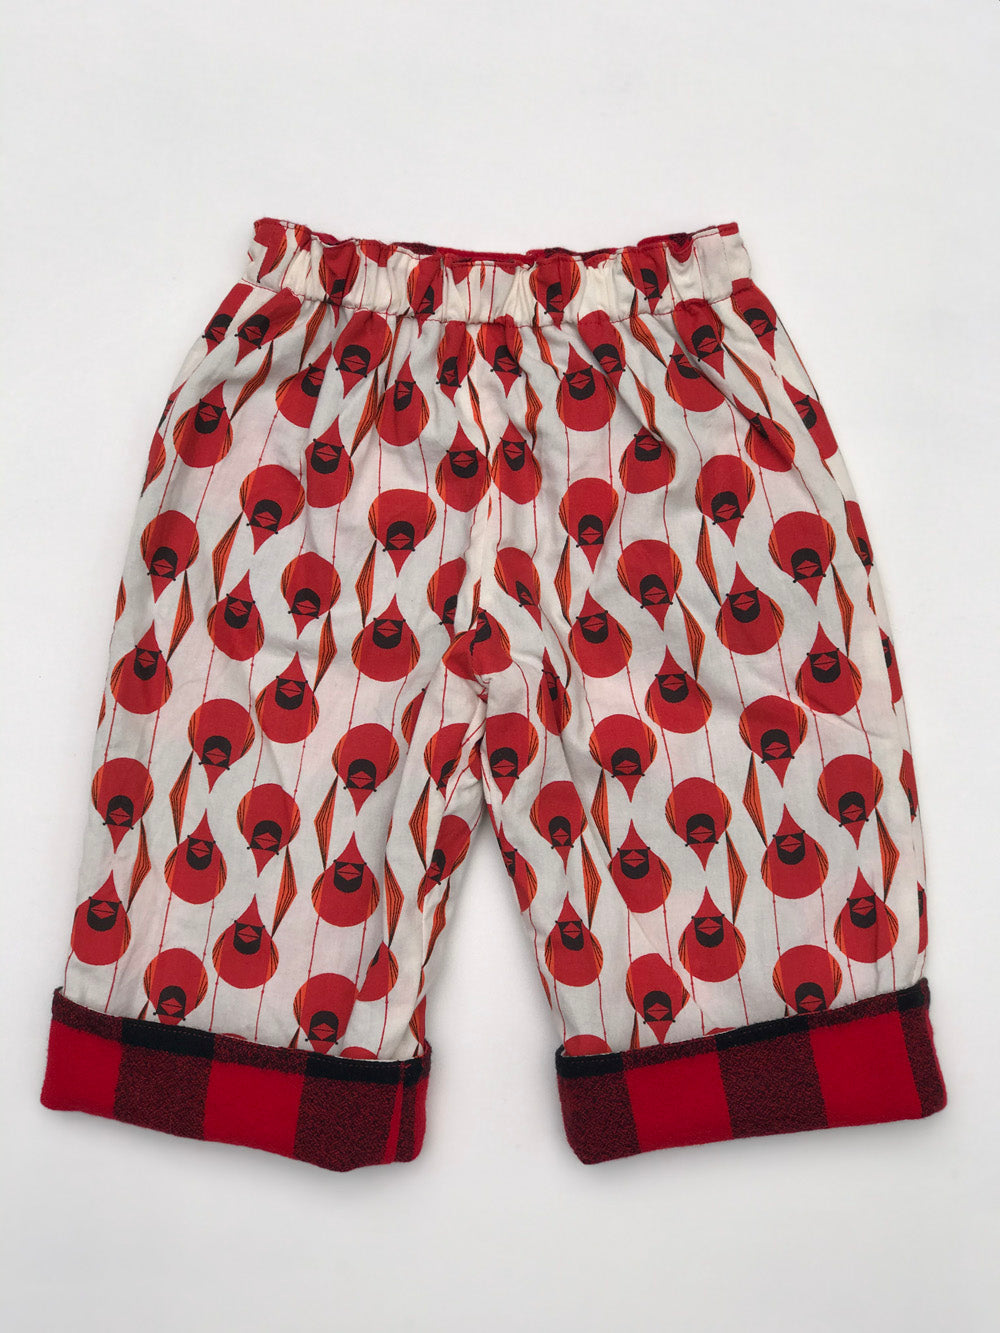 reversible pants in charley harper cardinal - little girl Pearl